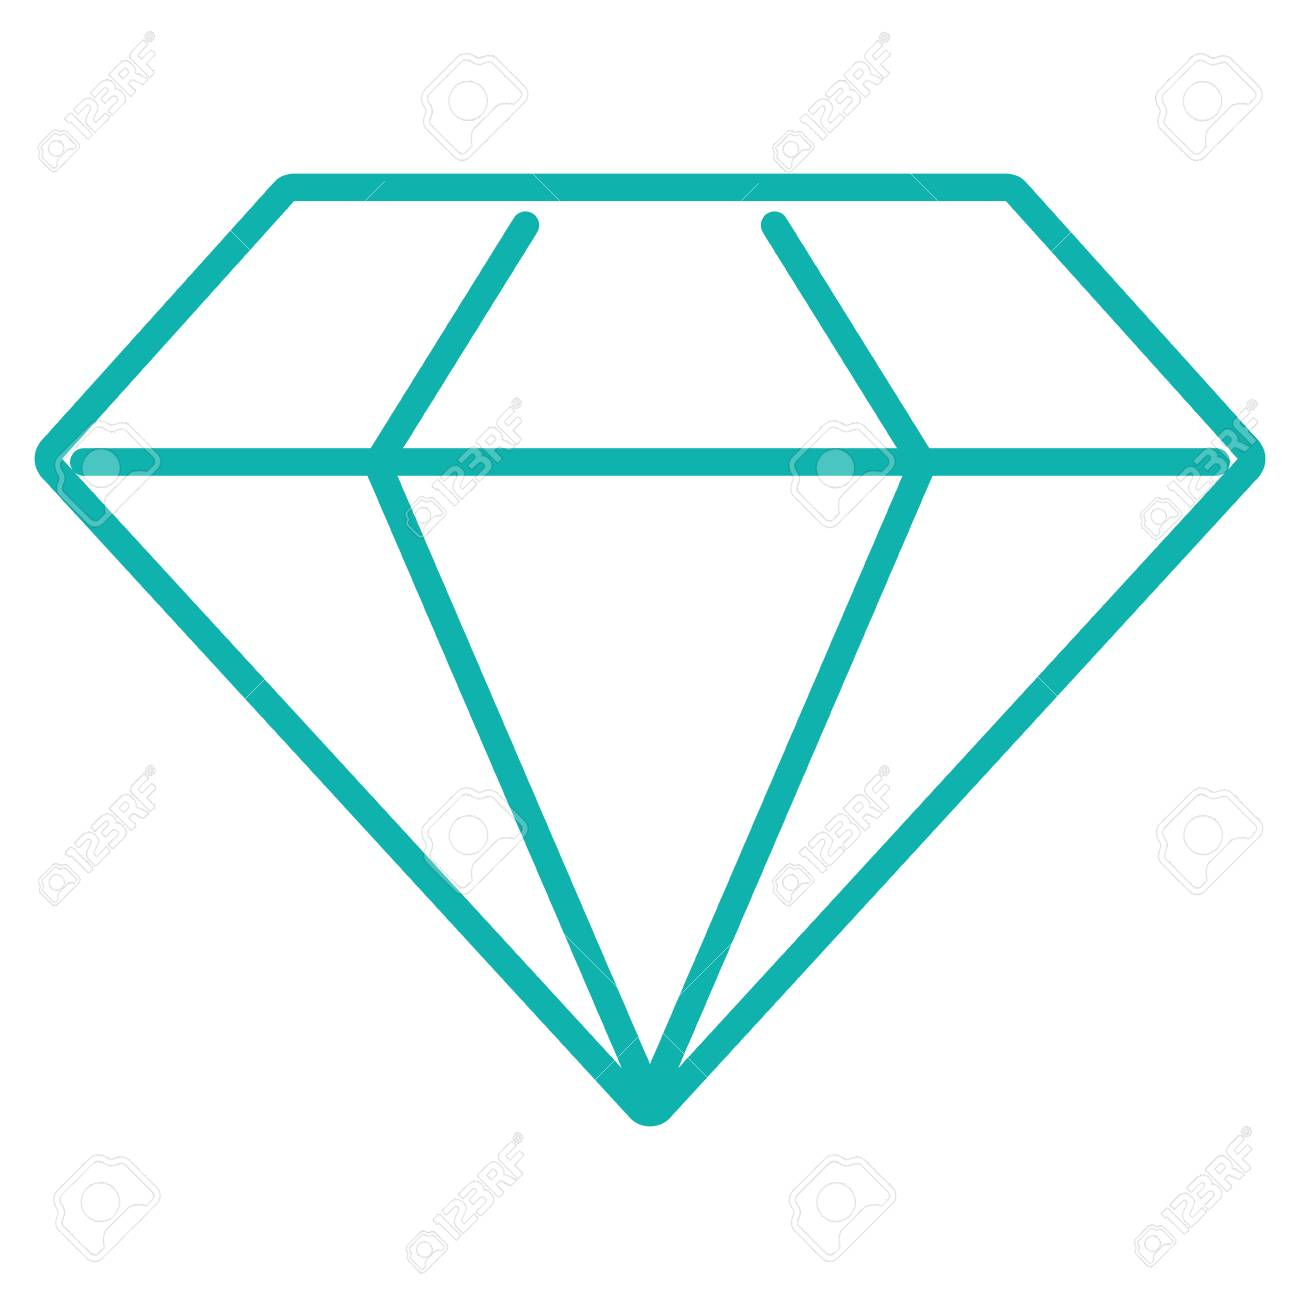 diamond vector illustration royalty free cliparts vectors and rh 123rf com diamond vector brushes for photoshop diamond vector brushes for photoshop